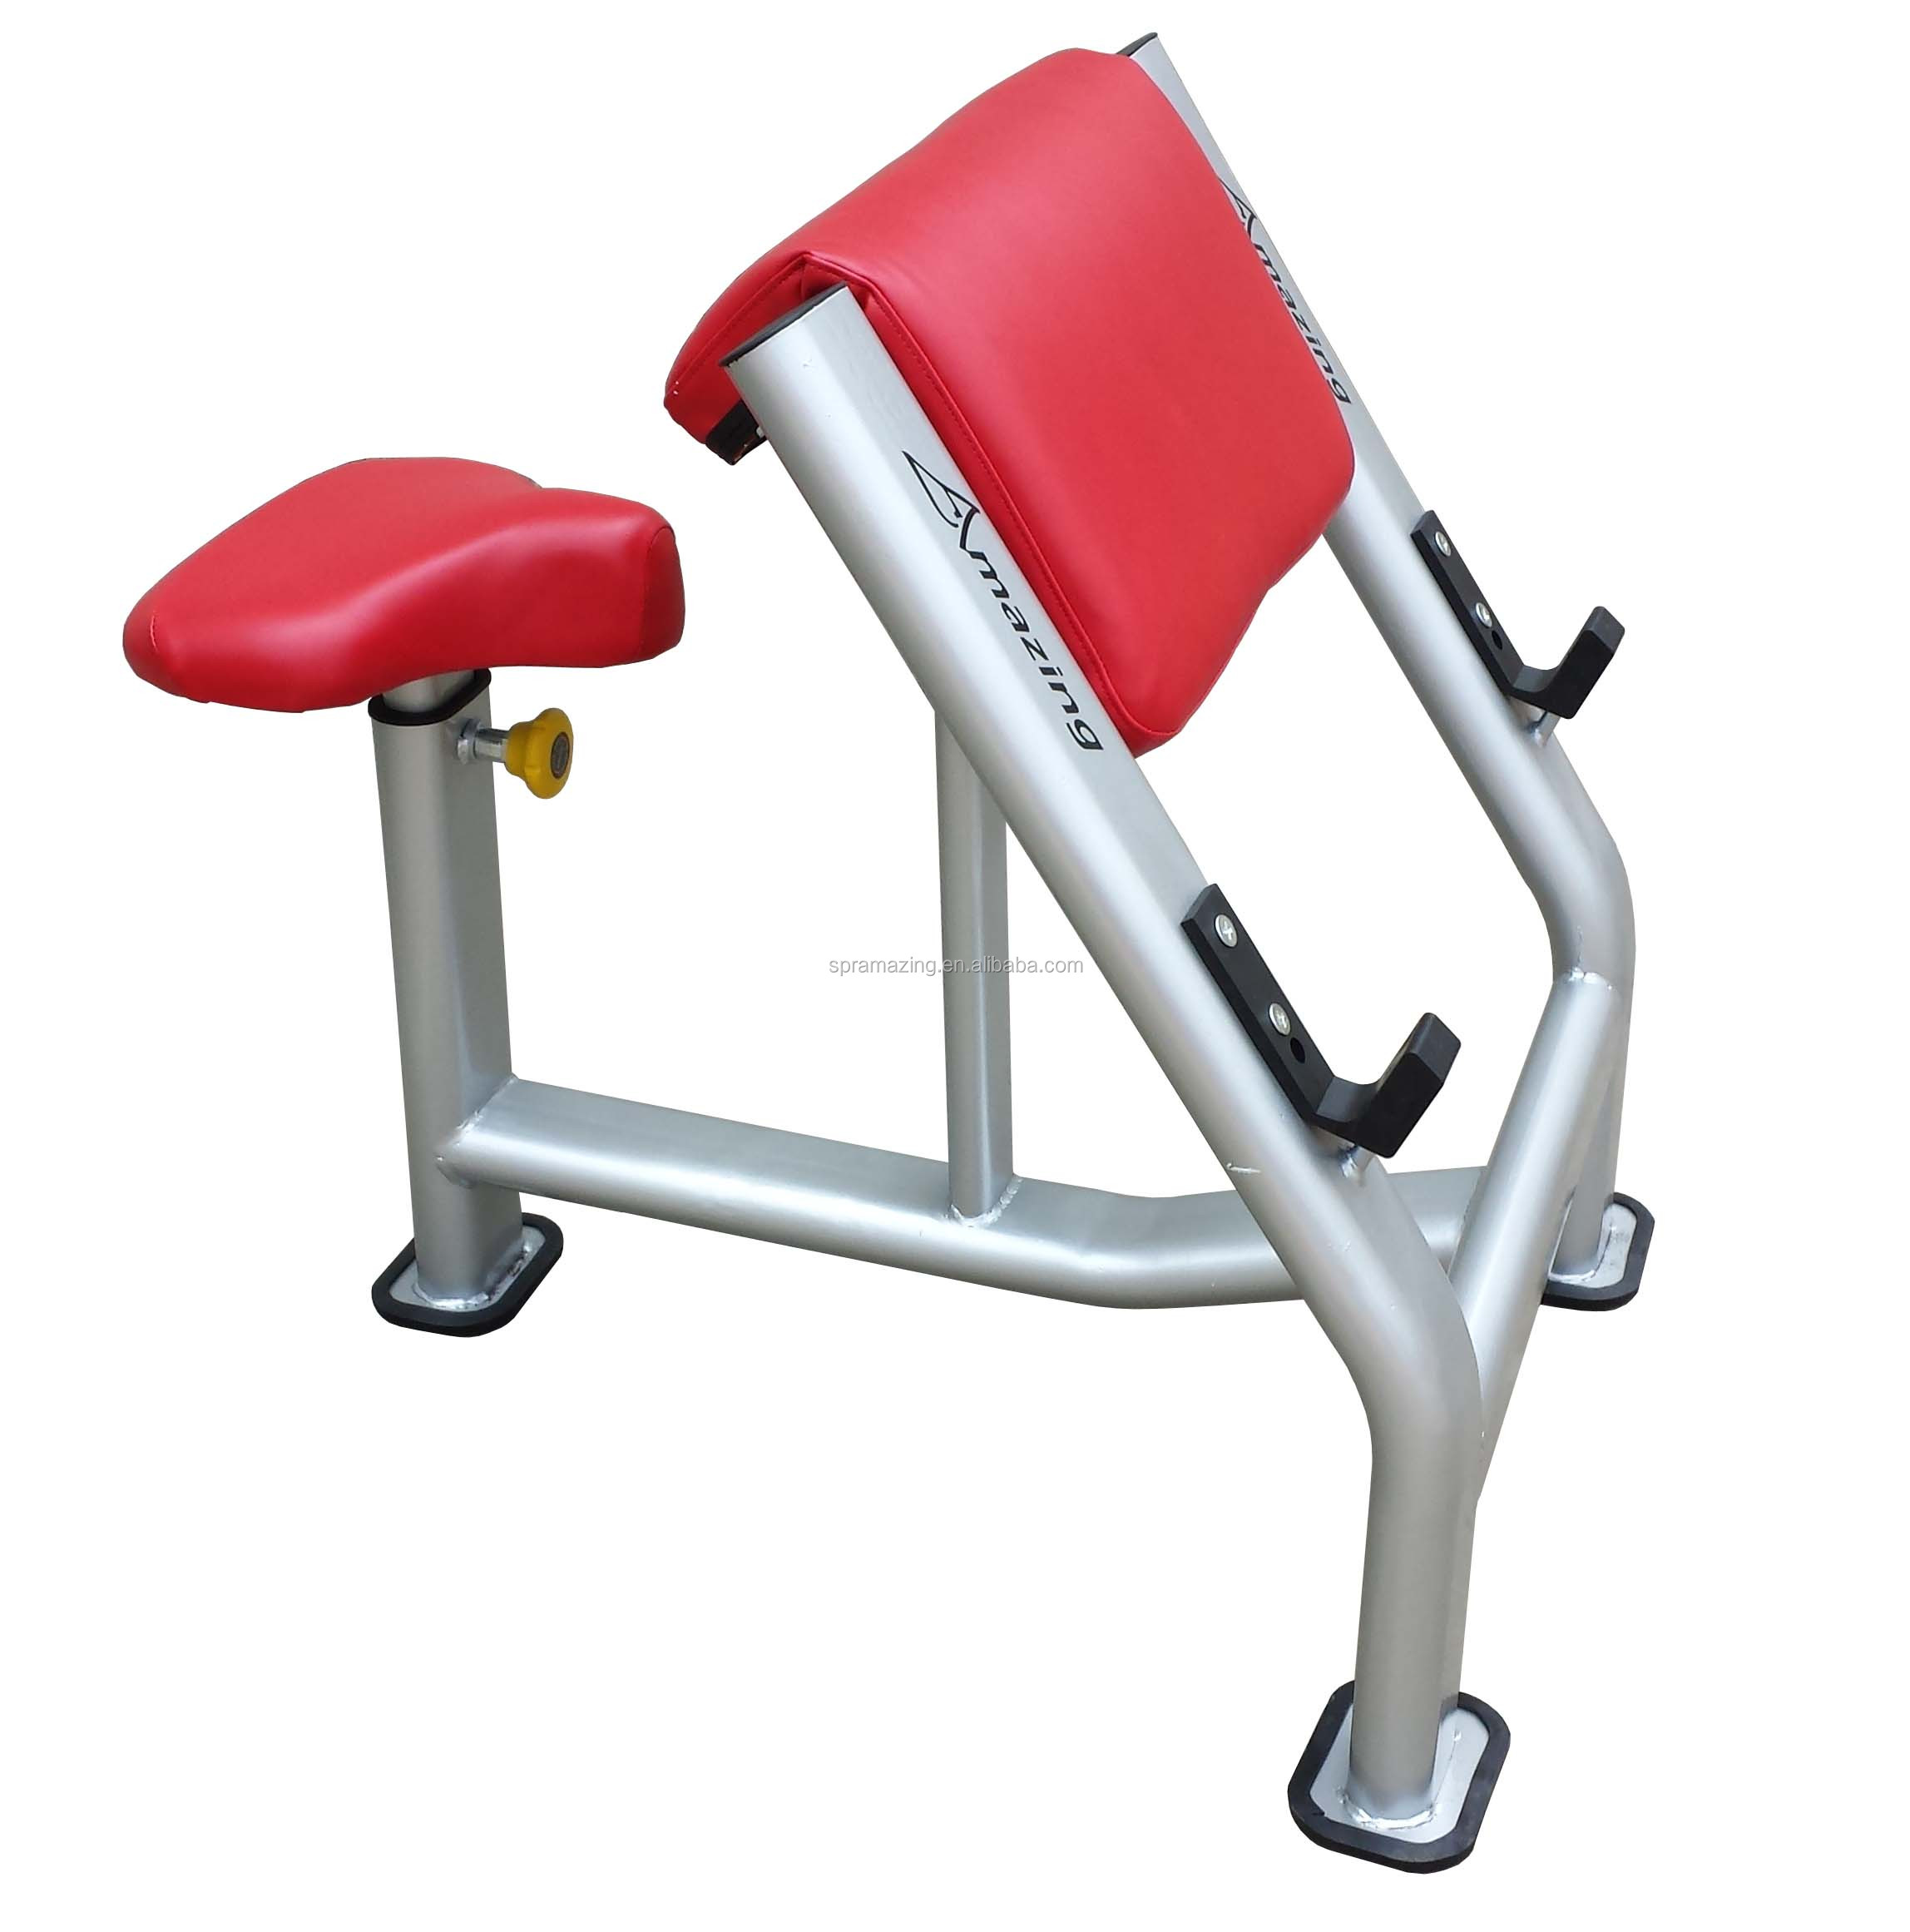 Preacher curl bench Commercial gym fitness equipment made in Guangzhou factory AMA-8825